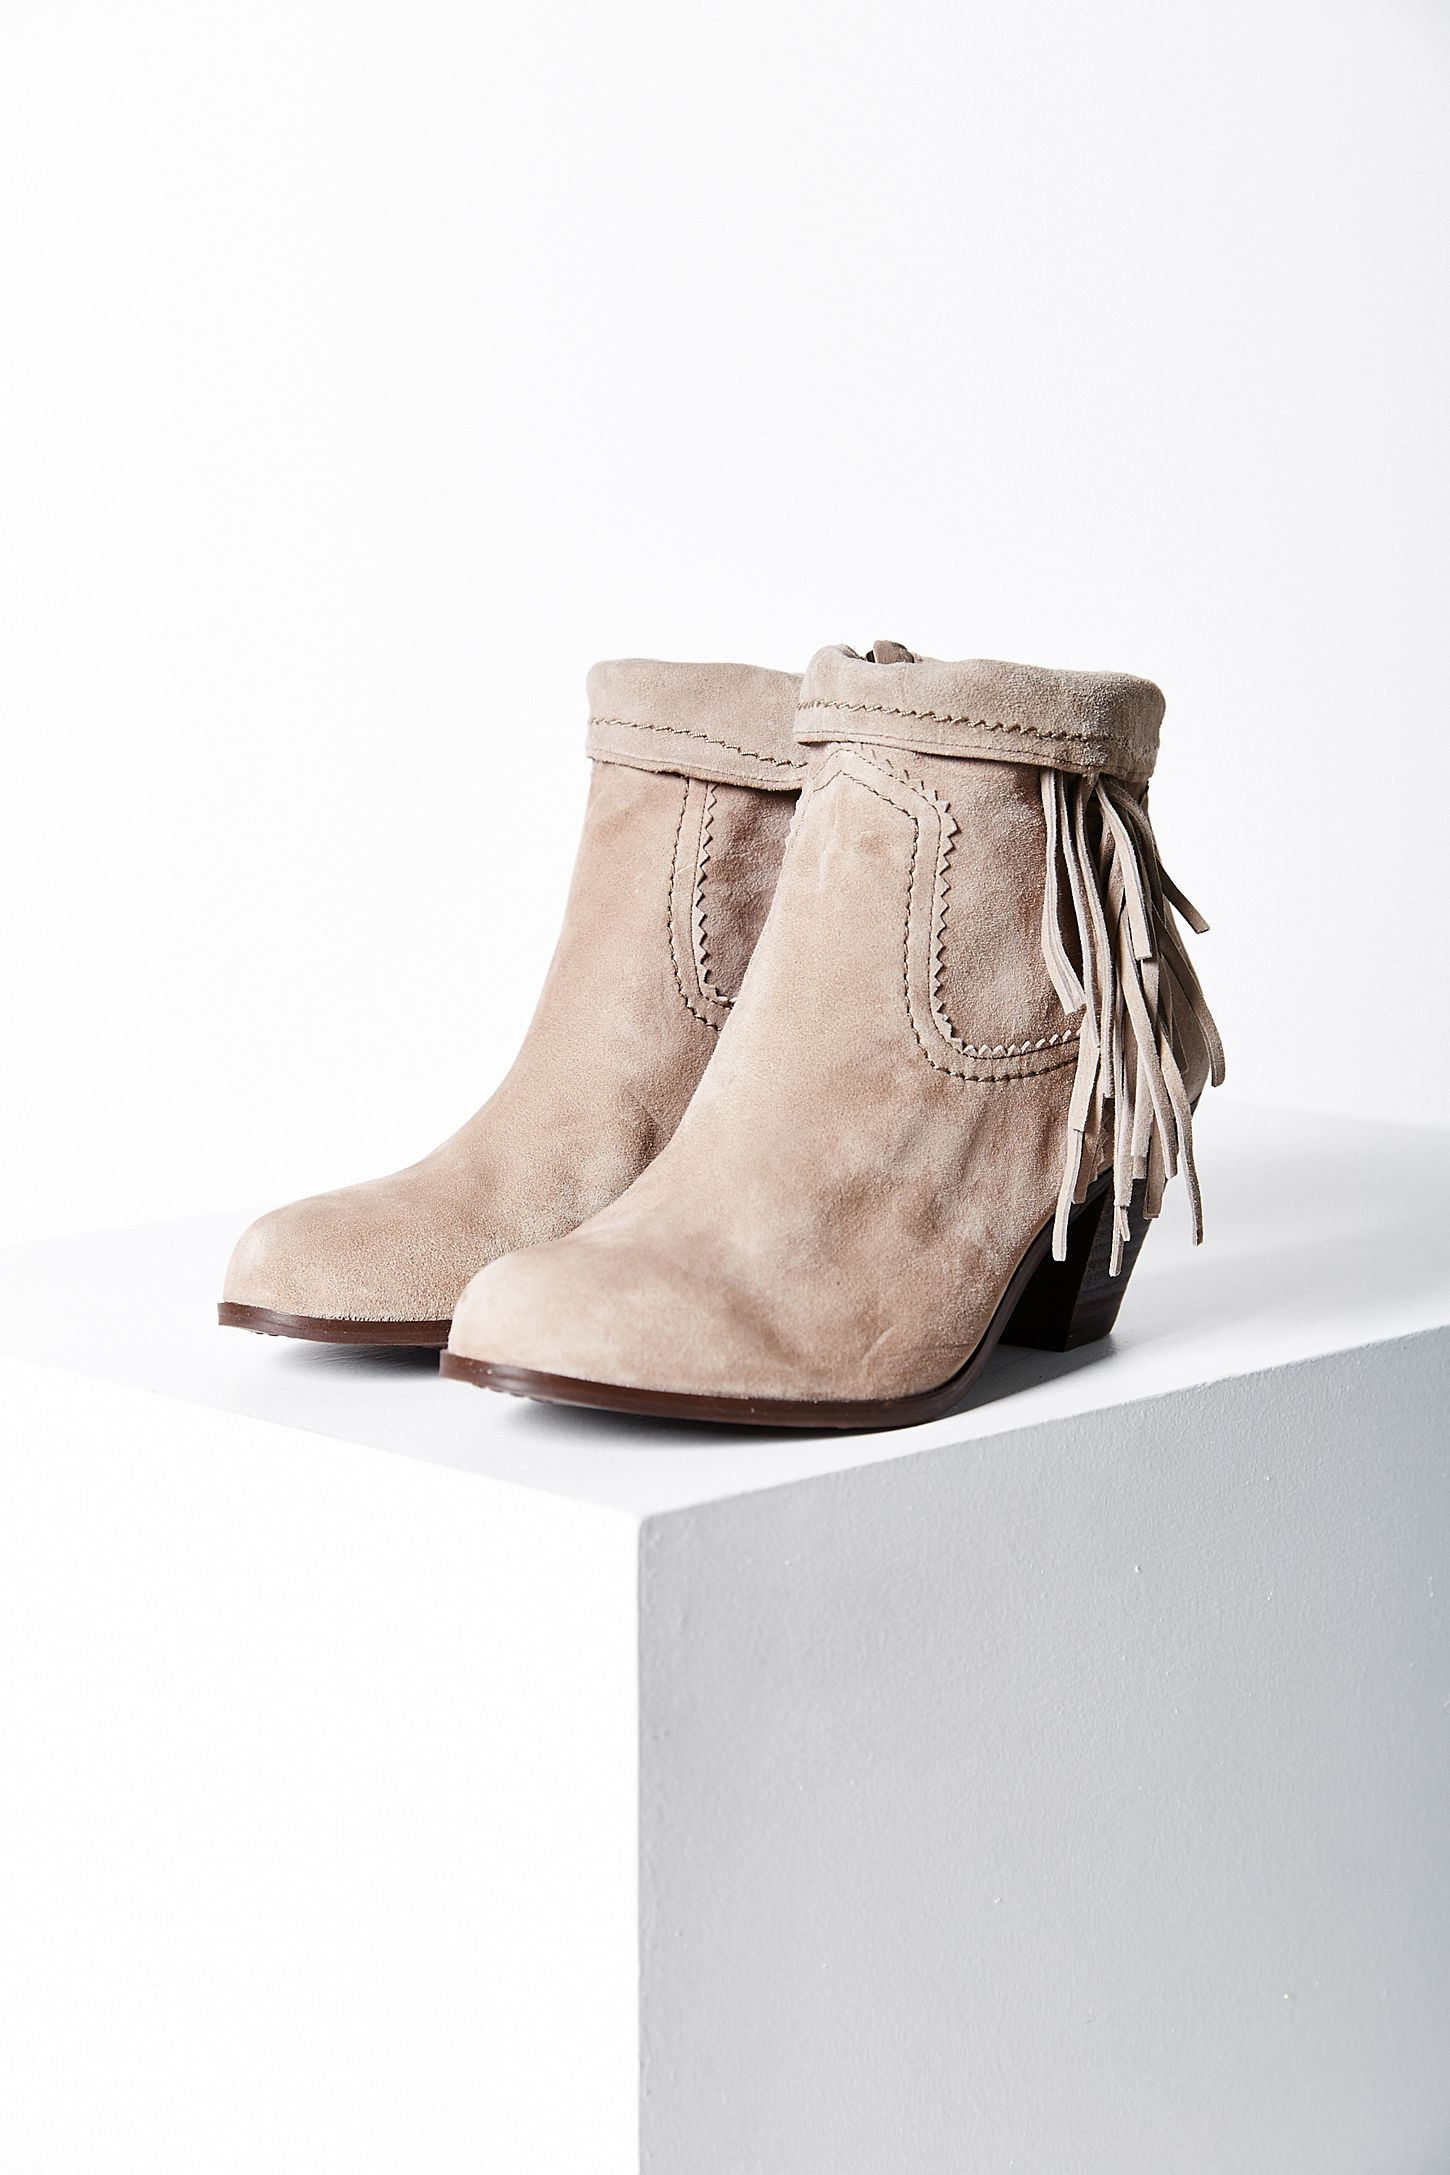 c8df98602 Sam Edelman Louie Fringe Ankle Boot